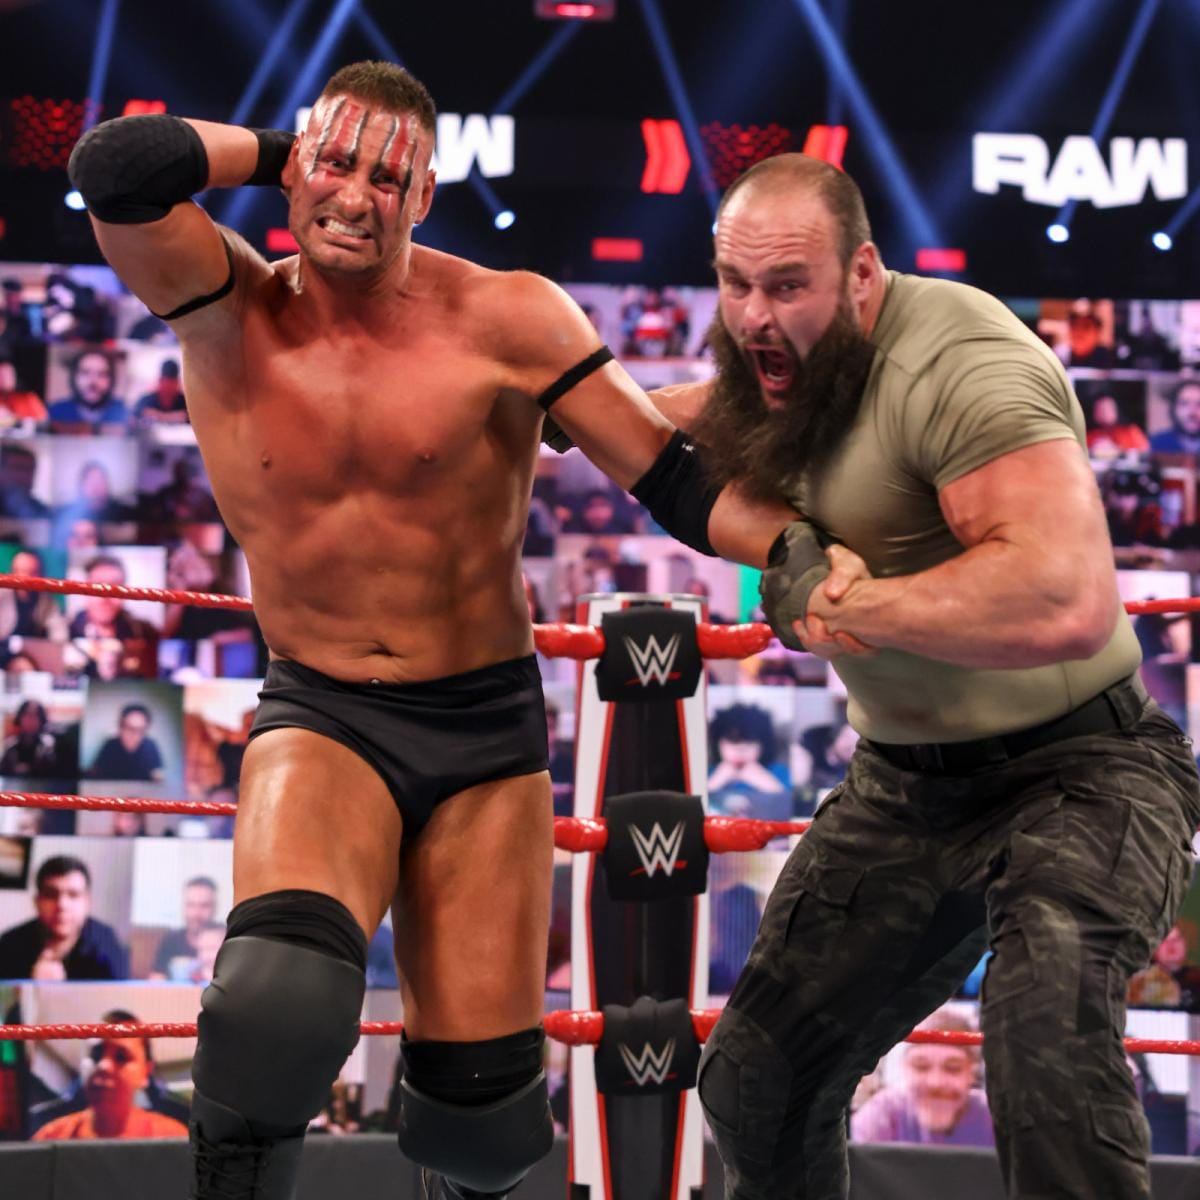 Braun Strowman defeated MACE and T-BAR by disqualification – 1-on-2 Handicap Match (WWE)